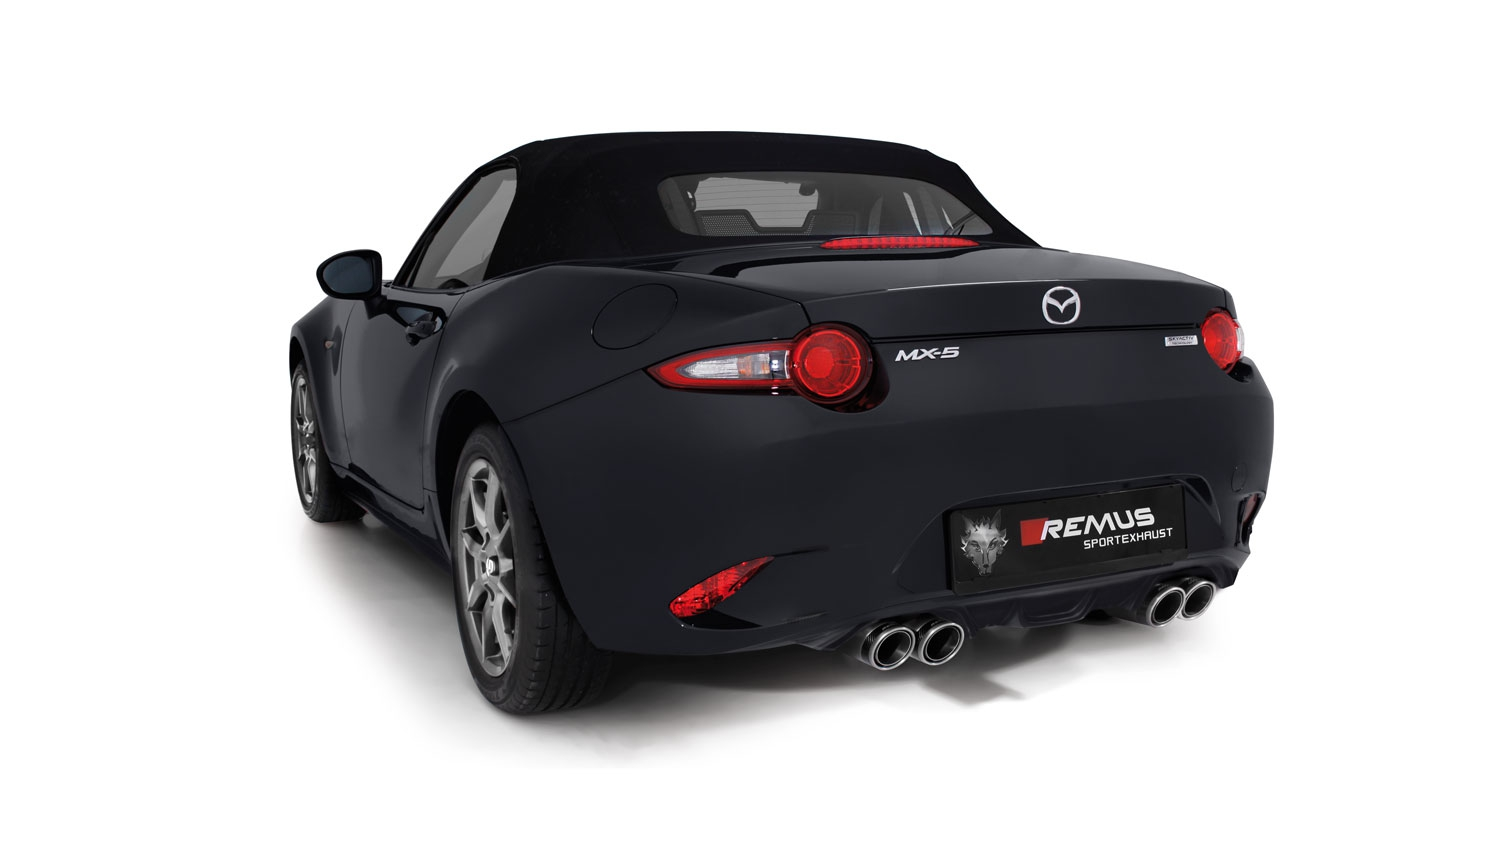 remus news remus product information 26 2016 mazda mx 5. Black Bedroom Furniture Sets. Home Design Ideas